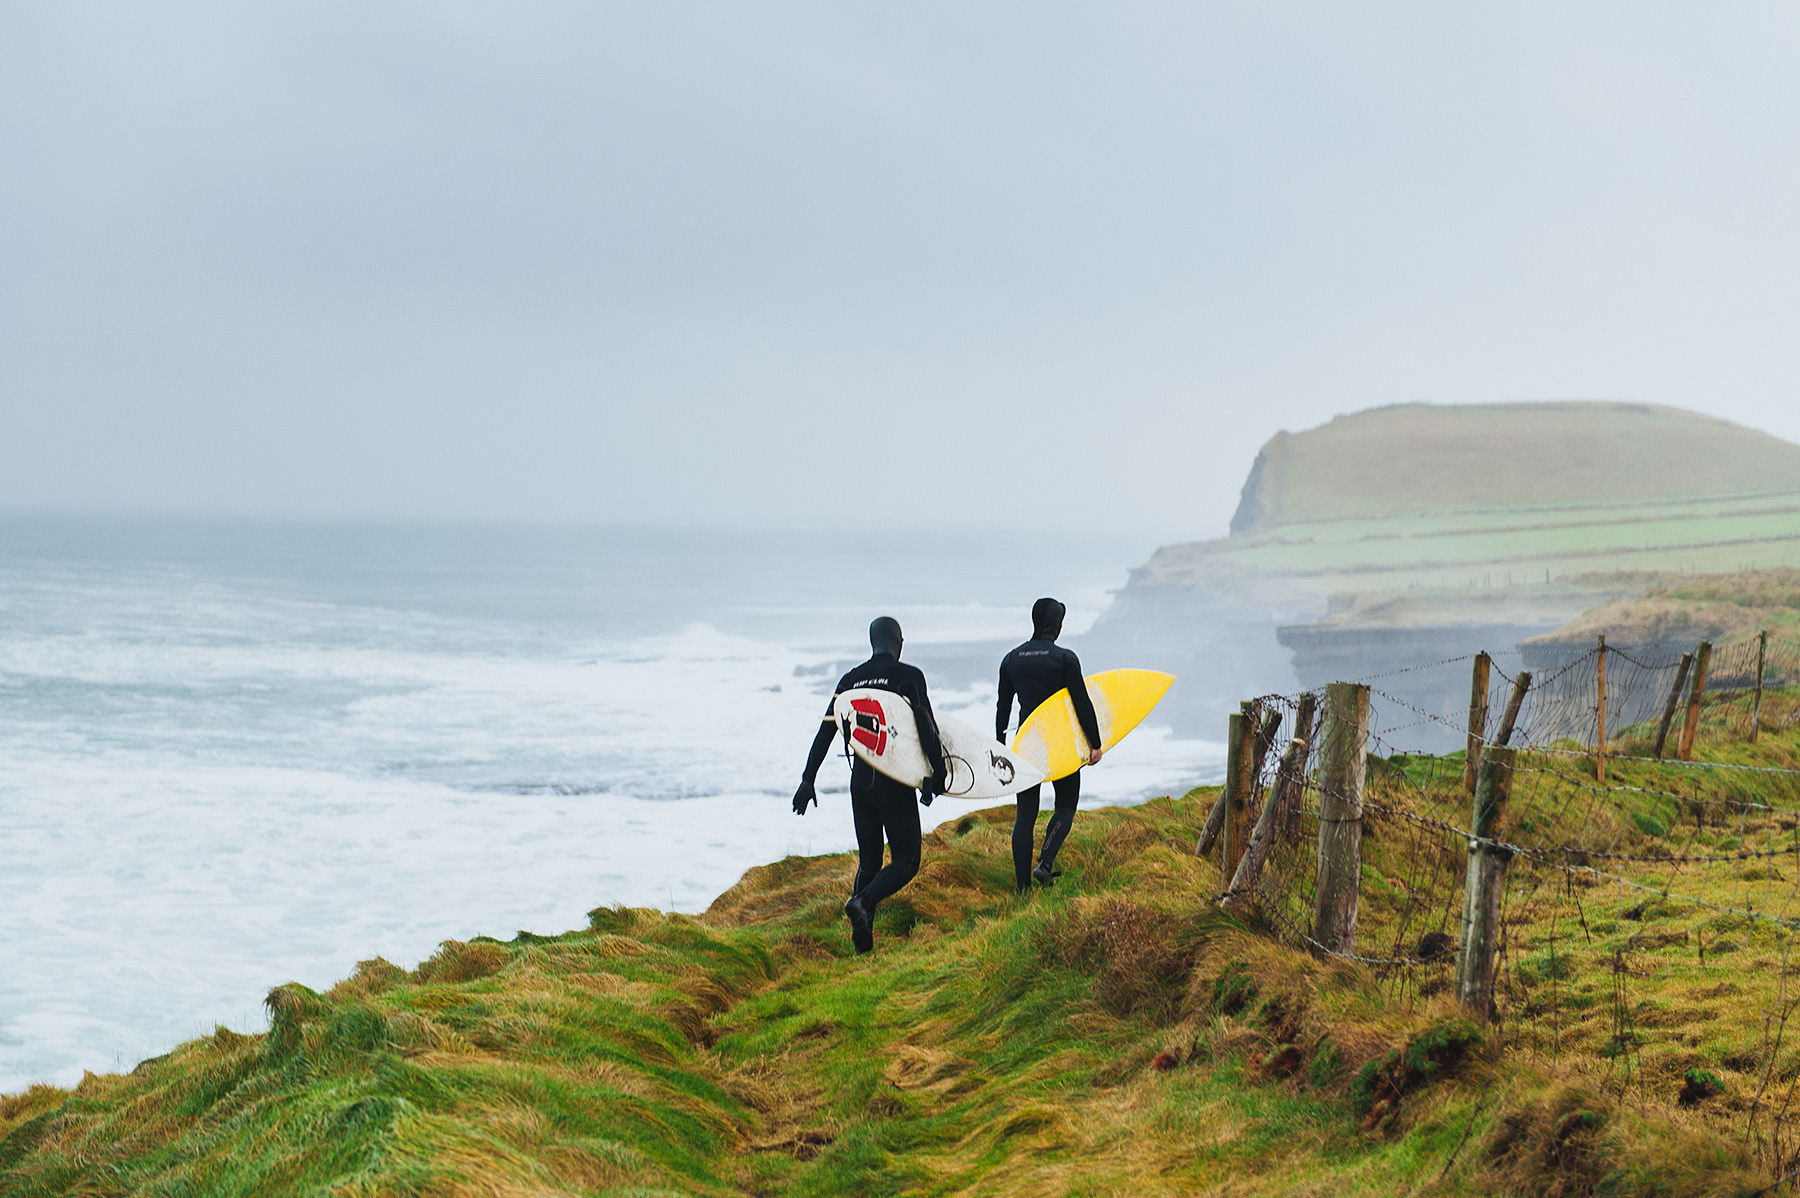 winter-surfing-ireland-sport-adventure-18.jpg